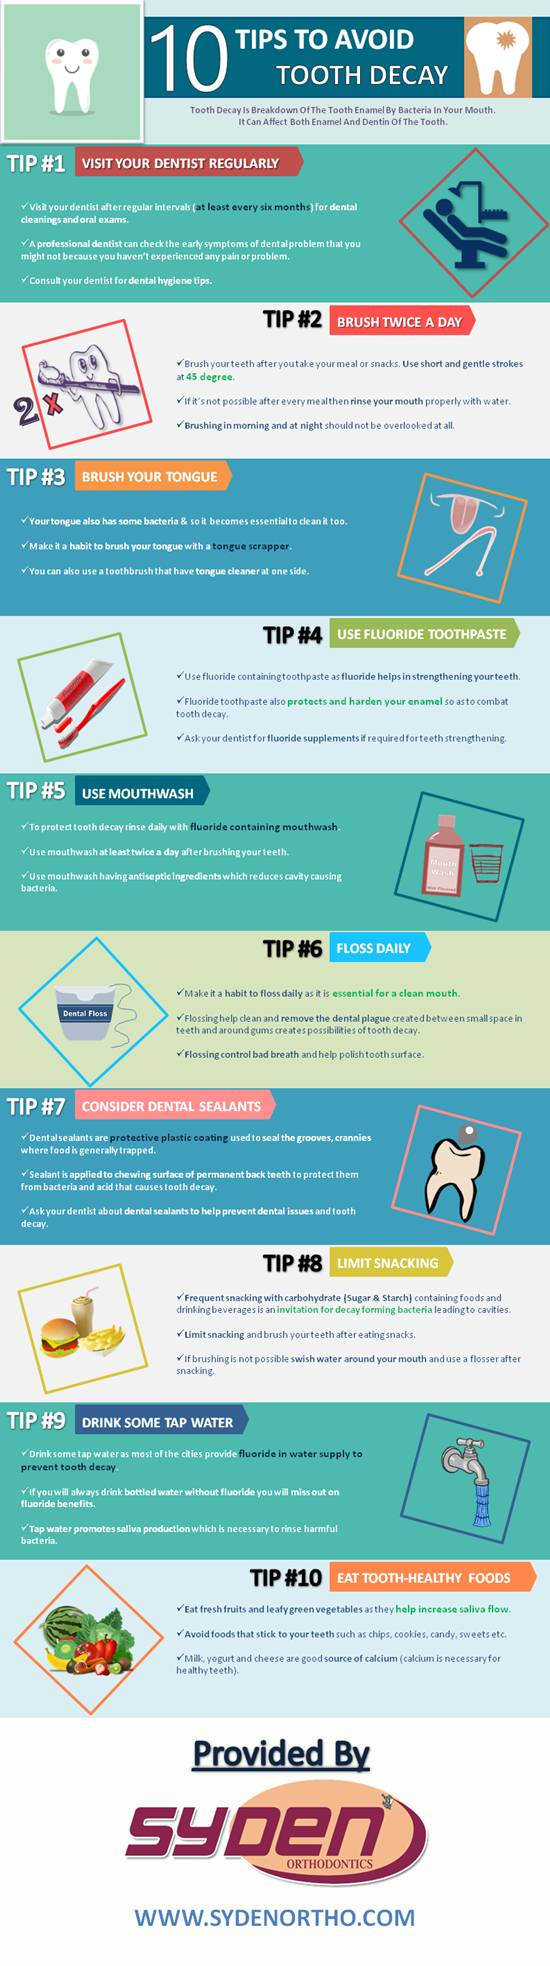 tips-to-avoid-dental-decay